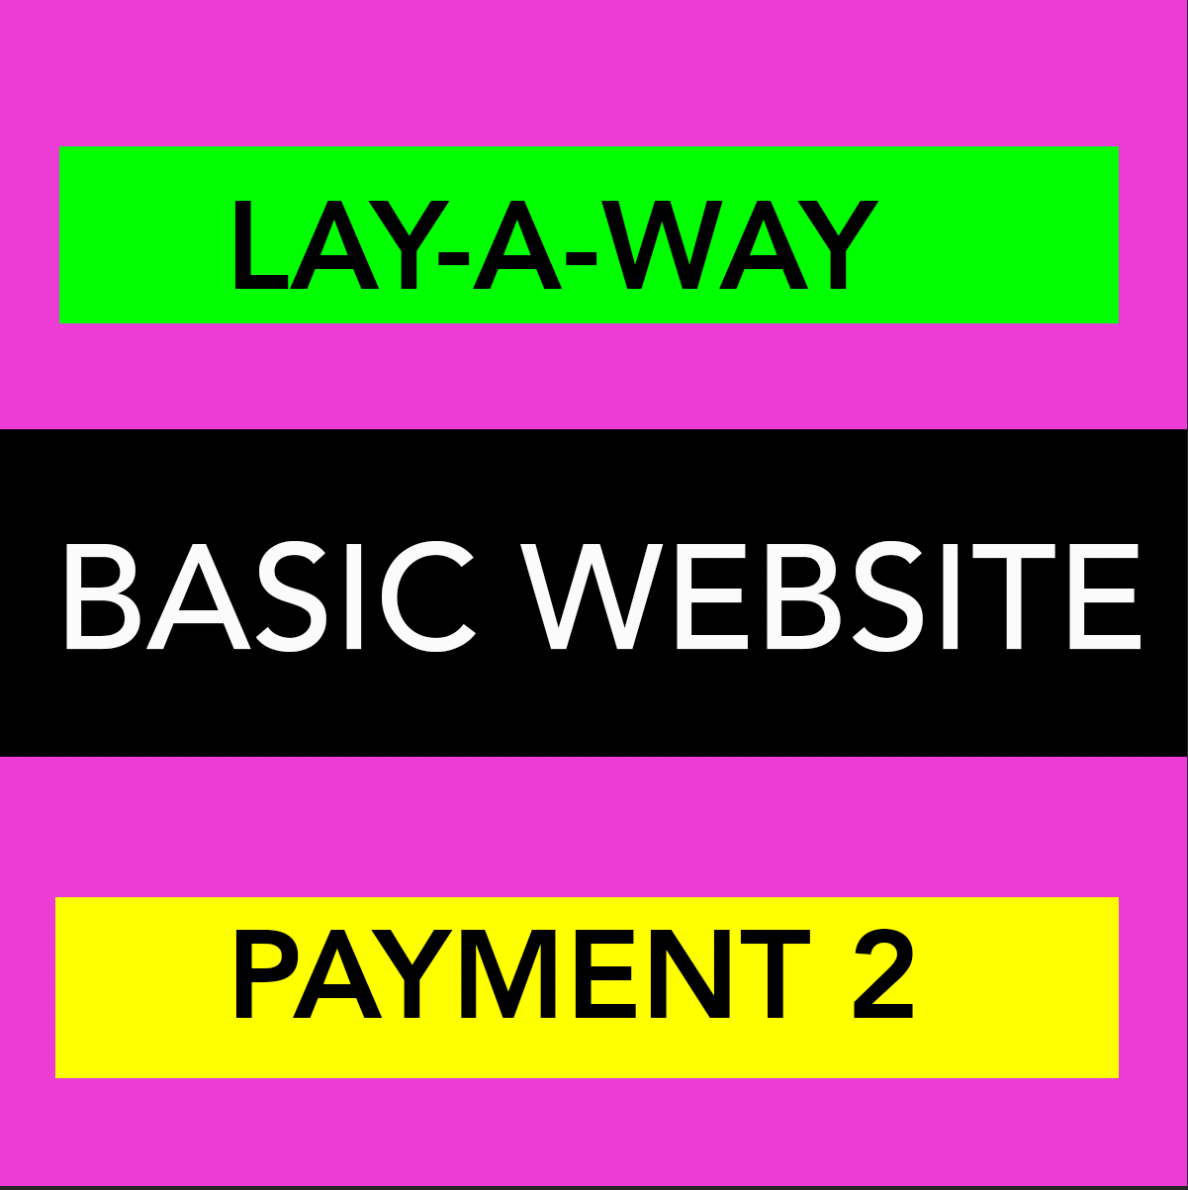 BASIC WEBSITE - LAYAWAY - PAYMENT 2